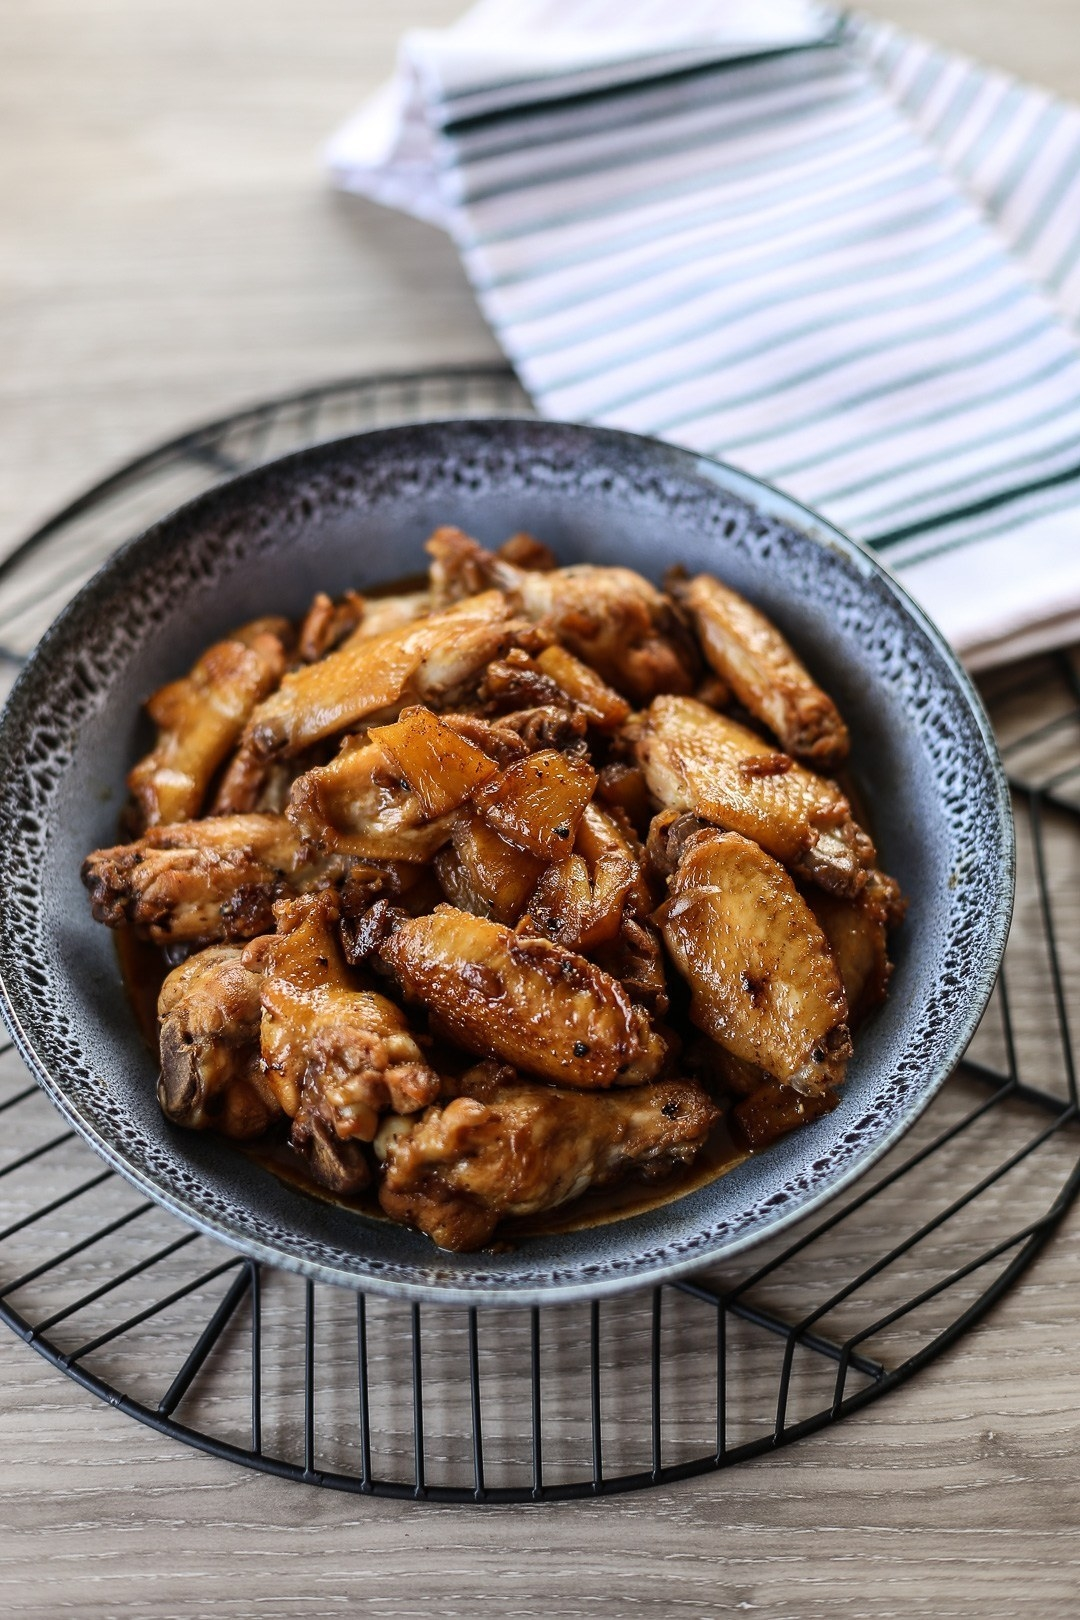 A textured blue bowl full of browned and glazed, sticky looking chicken wings